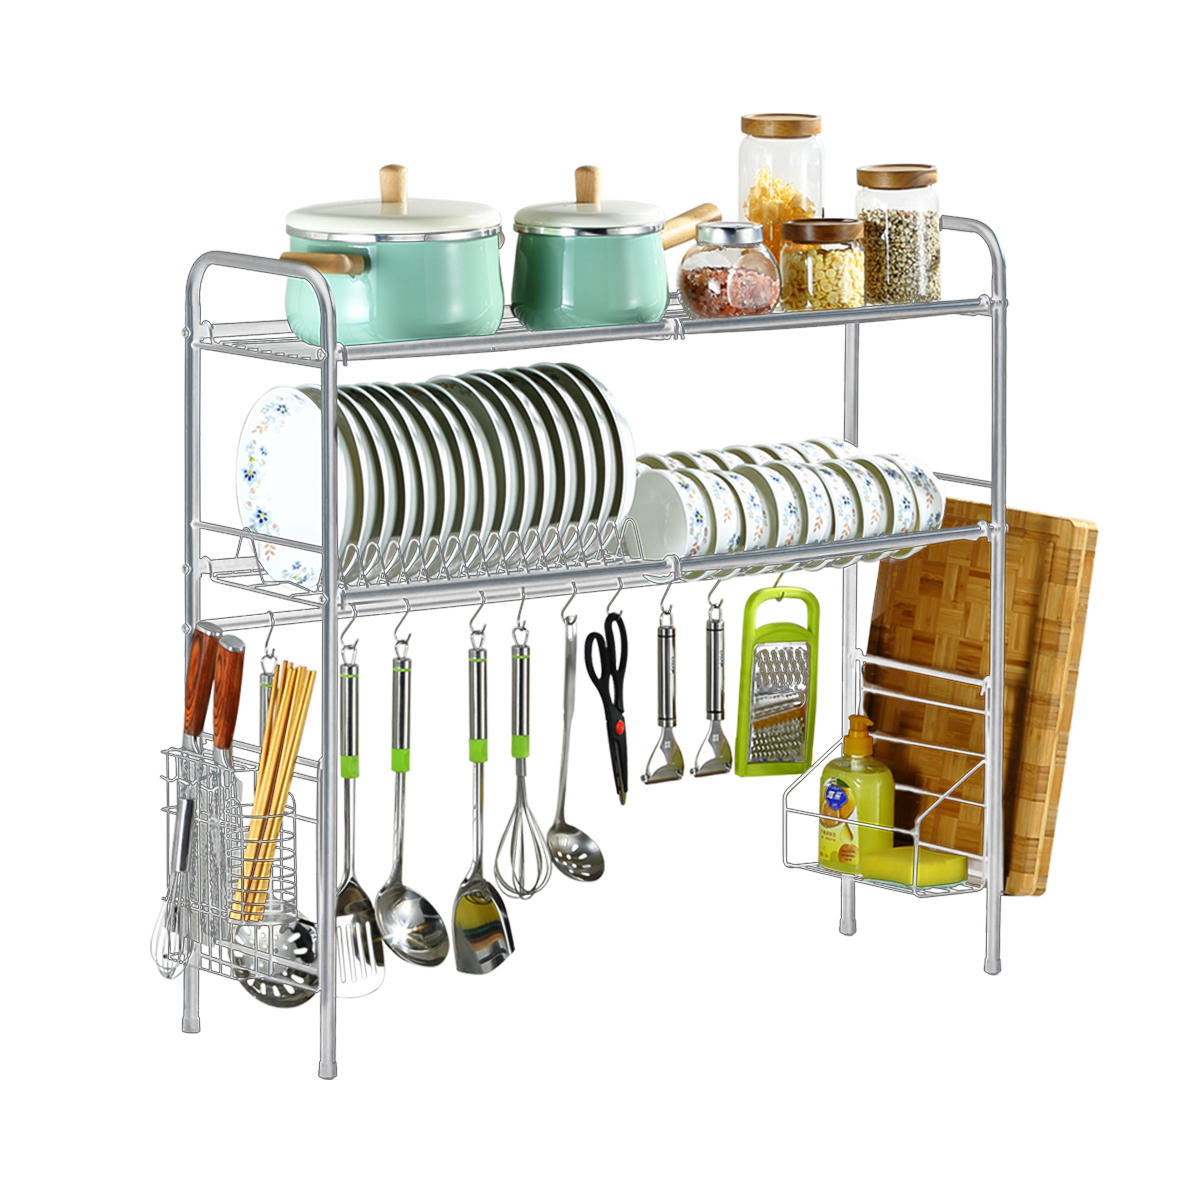 Large Capacity Sink Dish Drainer Drying Rack Kitchen Storage Stainless Steel USA